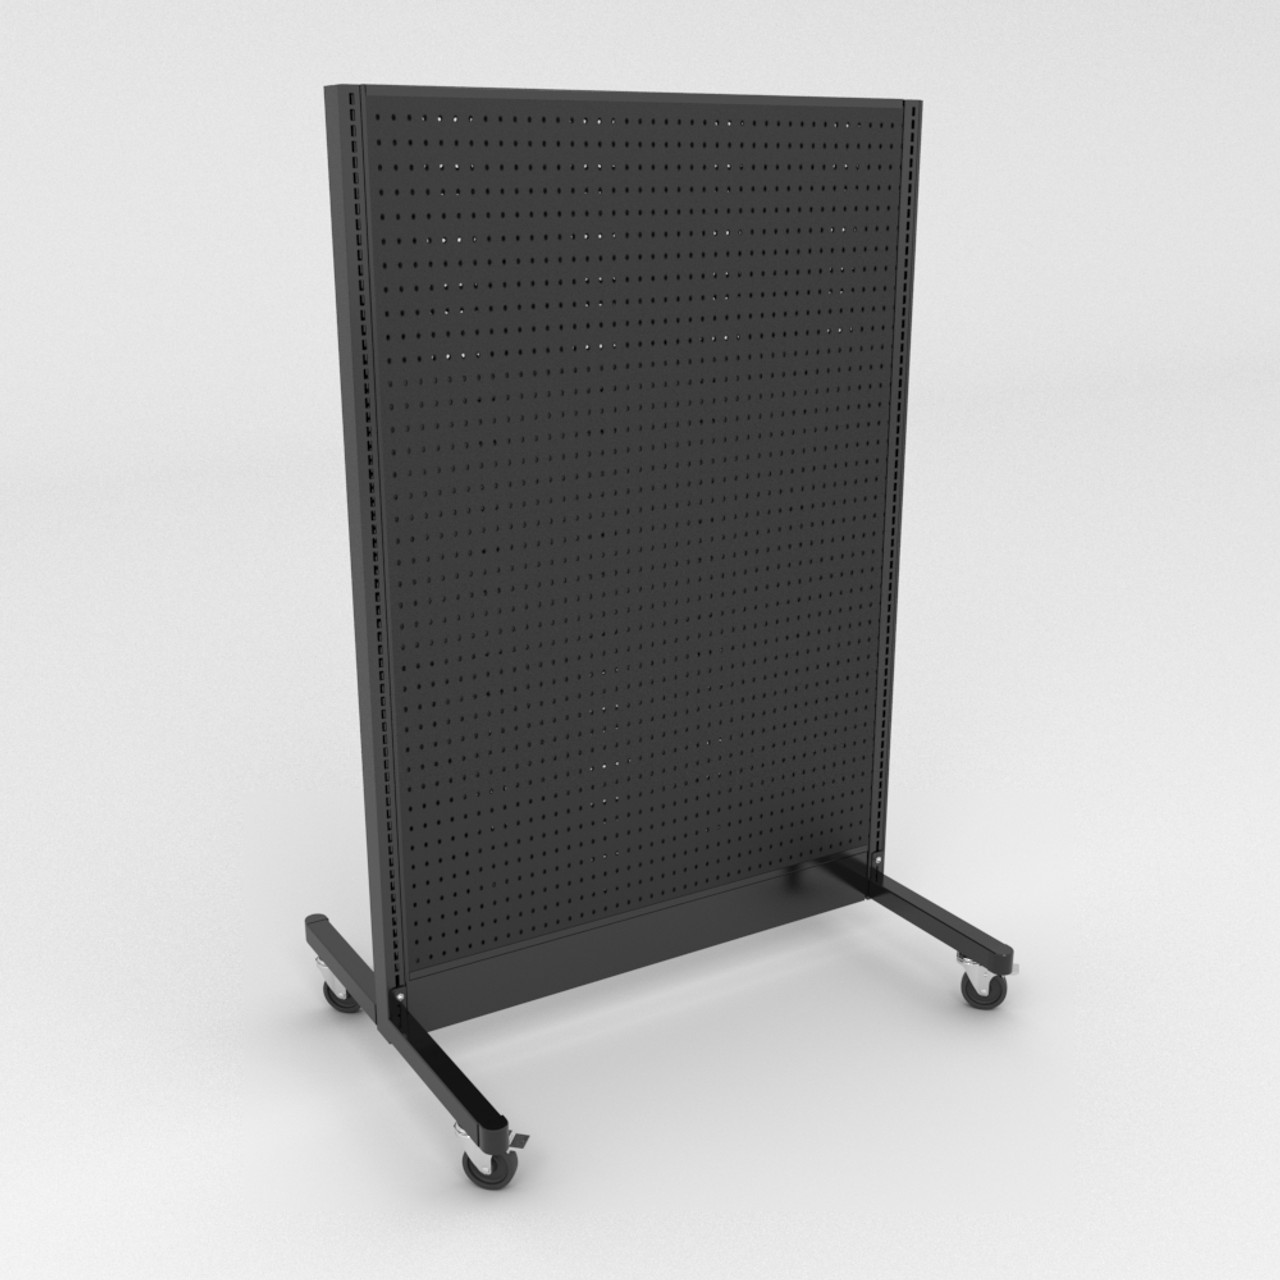 Mobile Gondola Shelving Double Sided W Casters Black 48 W X 72 H